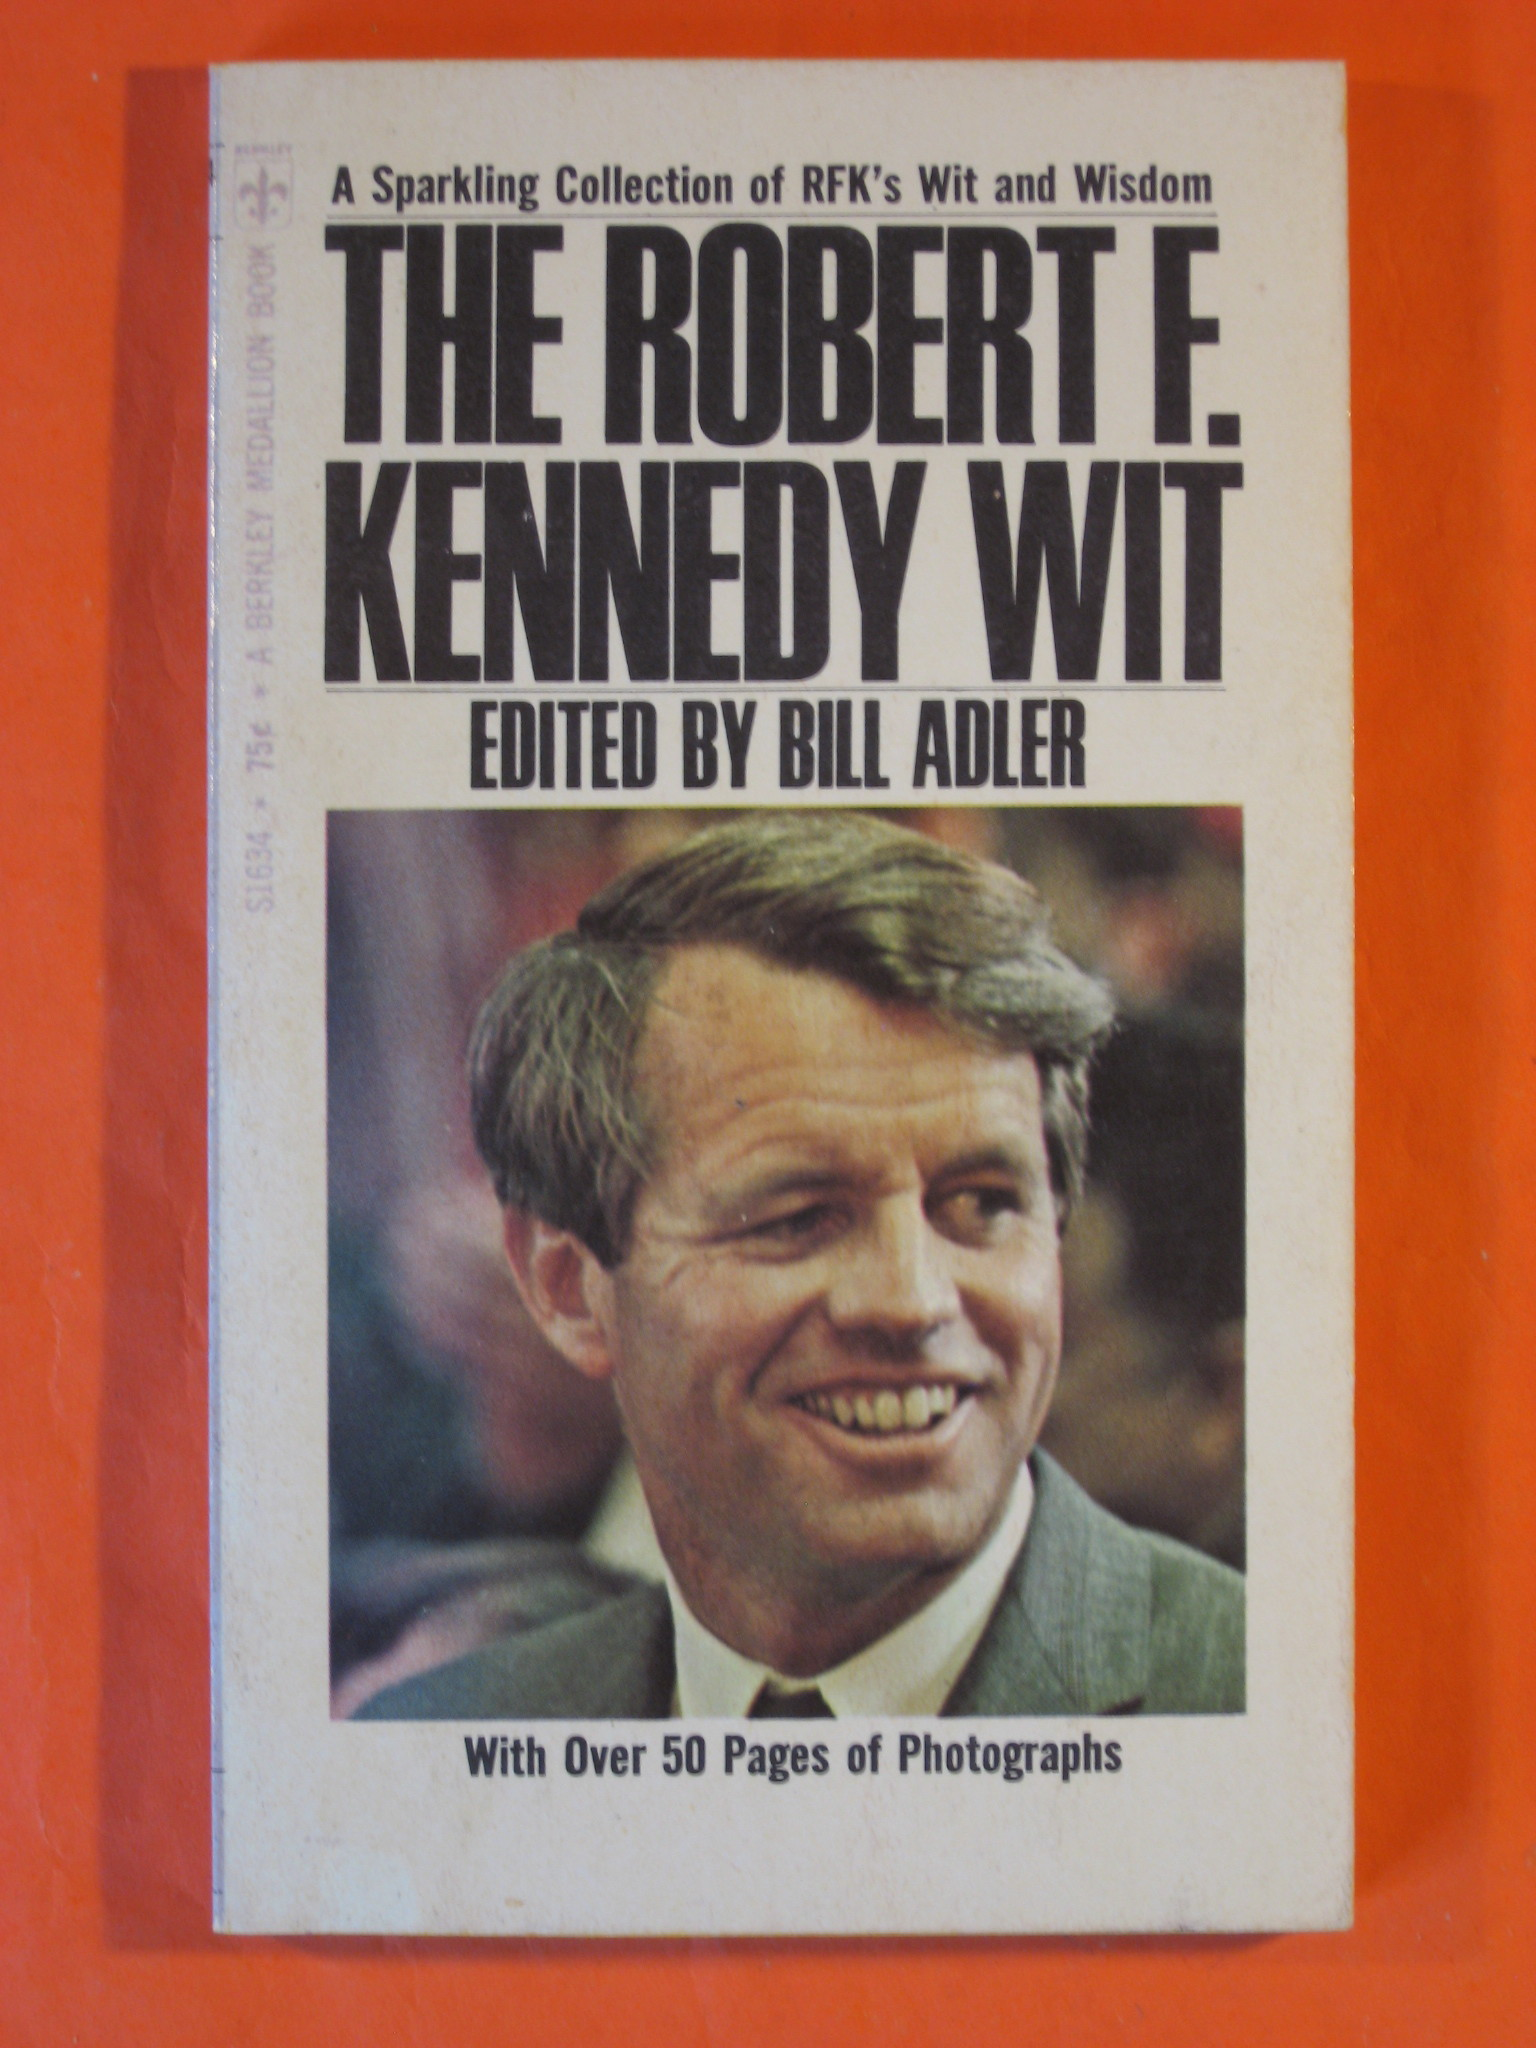 The Robert F. Kennedy wit: a Sparkling Collection of RFK's Wit and Wisdom, Adler, Bill (ed.)